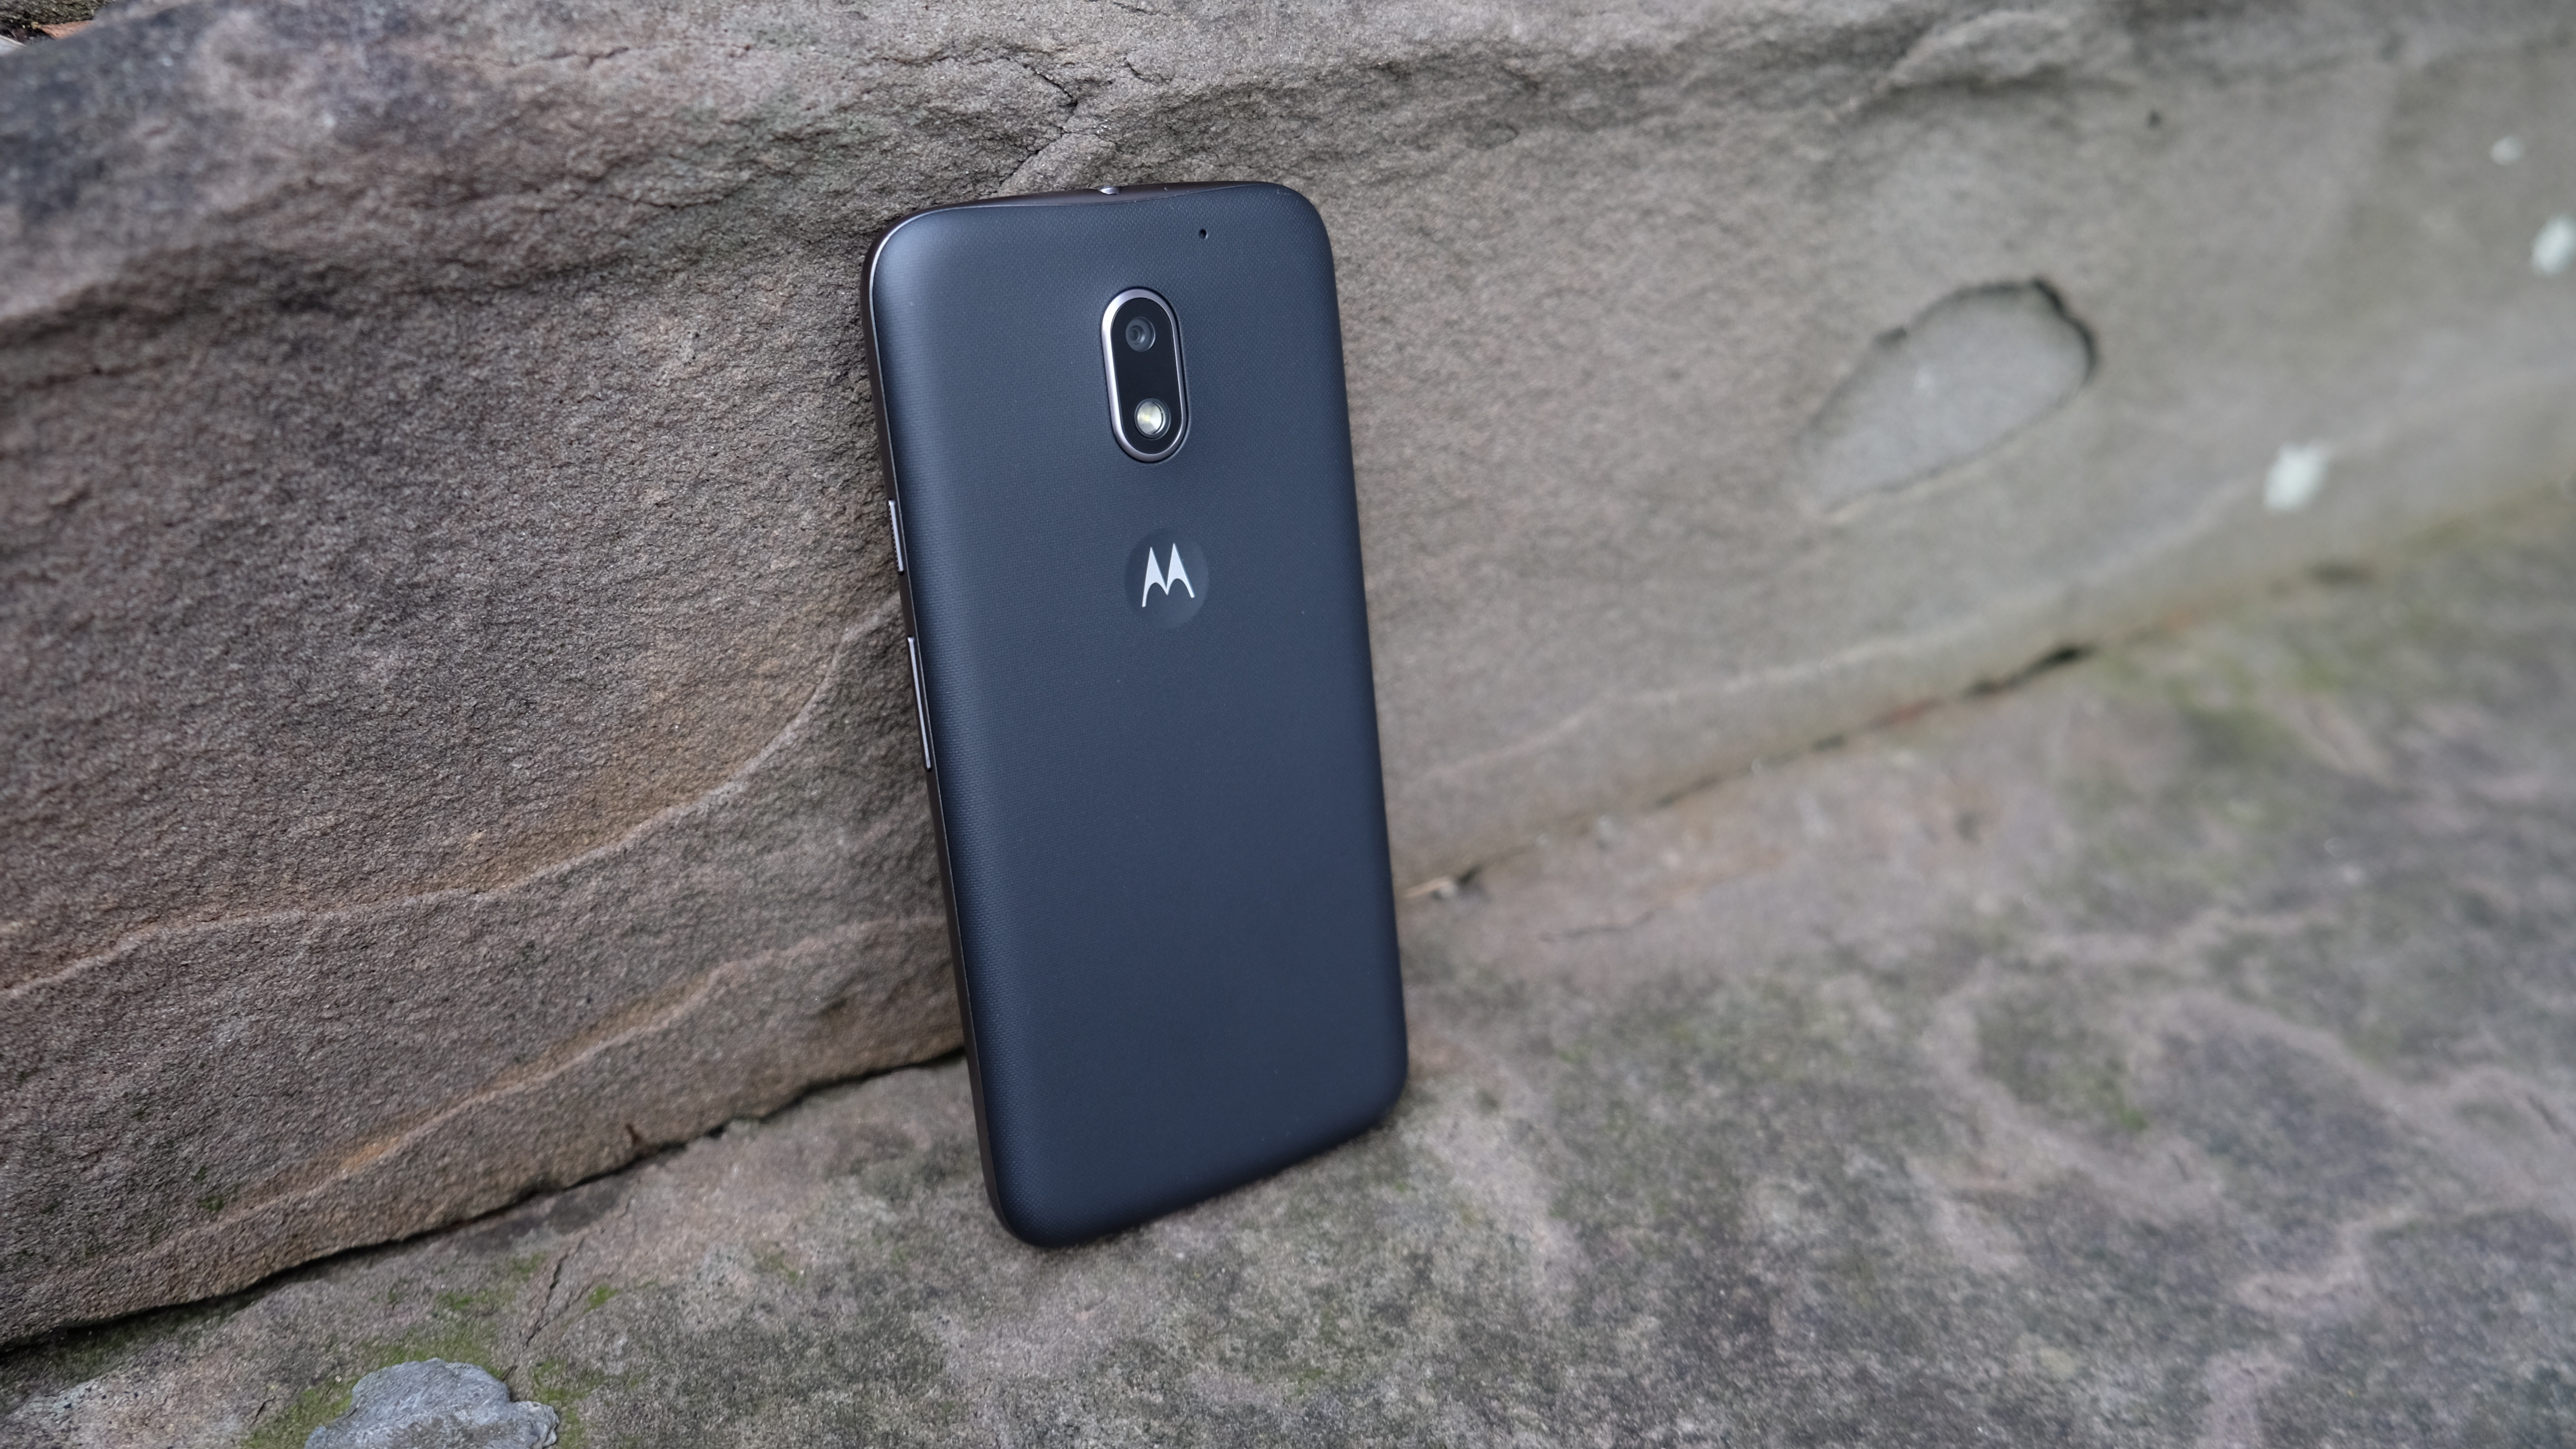 Andrew Castillo Author At Enthrone Page 328 Of 371 Motorolla Moto E3 Power Casing Back Case Kasing Design 40 The Was Announced In July 2016 But Its Rumored That Z2 Will Land On June 8 And Possible Lenovo Which Now Owns Motorola